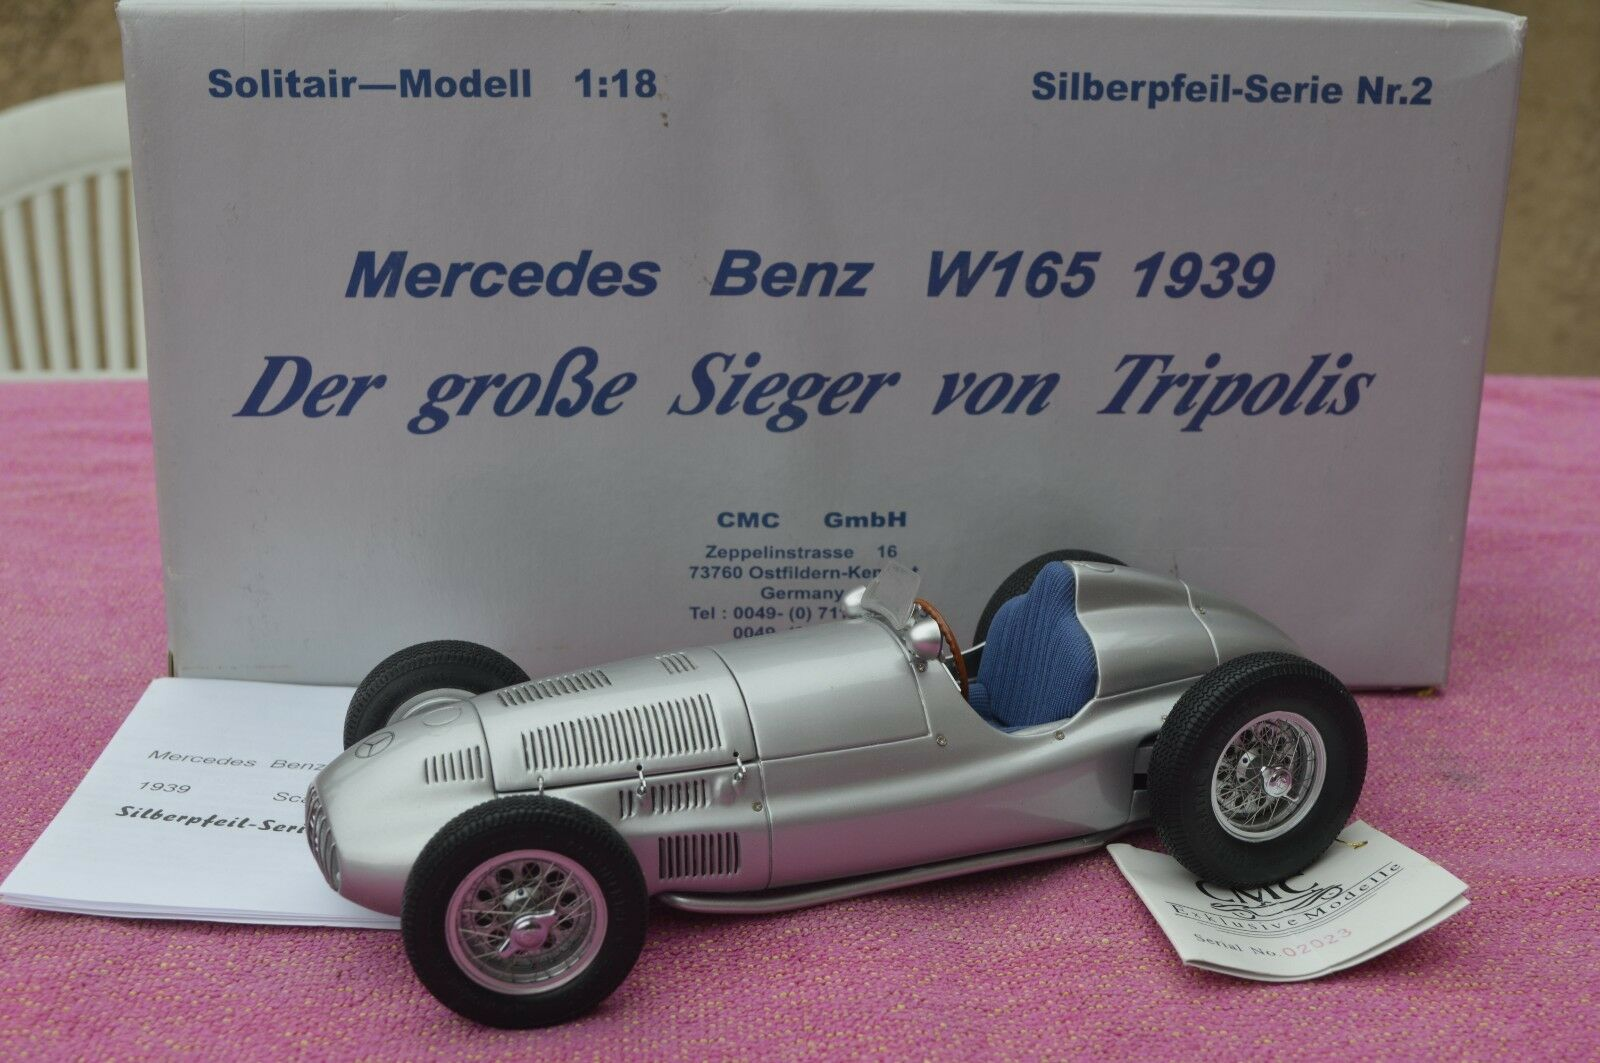 MERCEDES BENZ W 165 GP TRIPOLIS 1939 1 18 CMC M-018 Voiture miniature collection